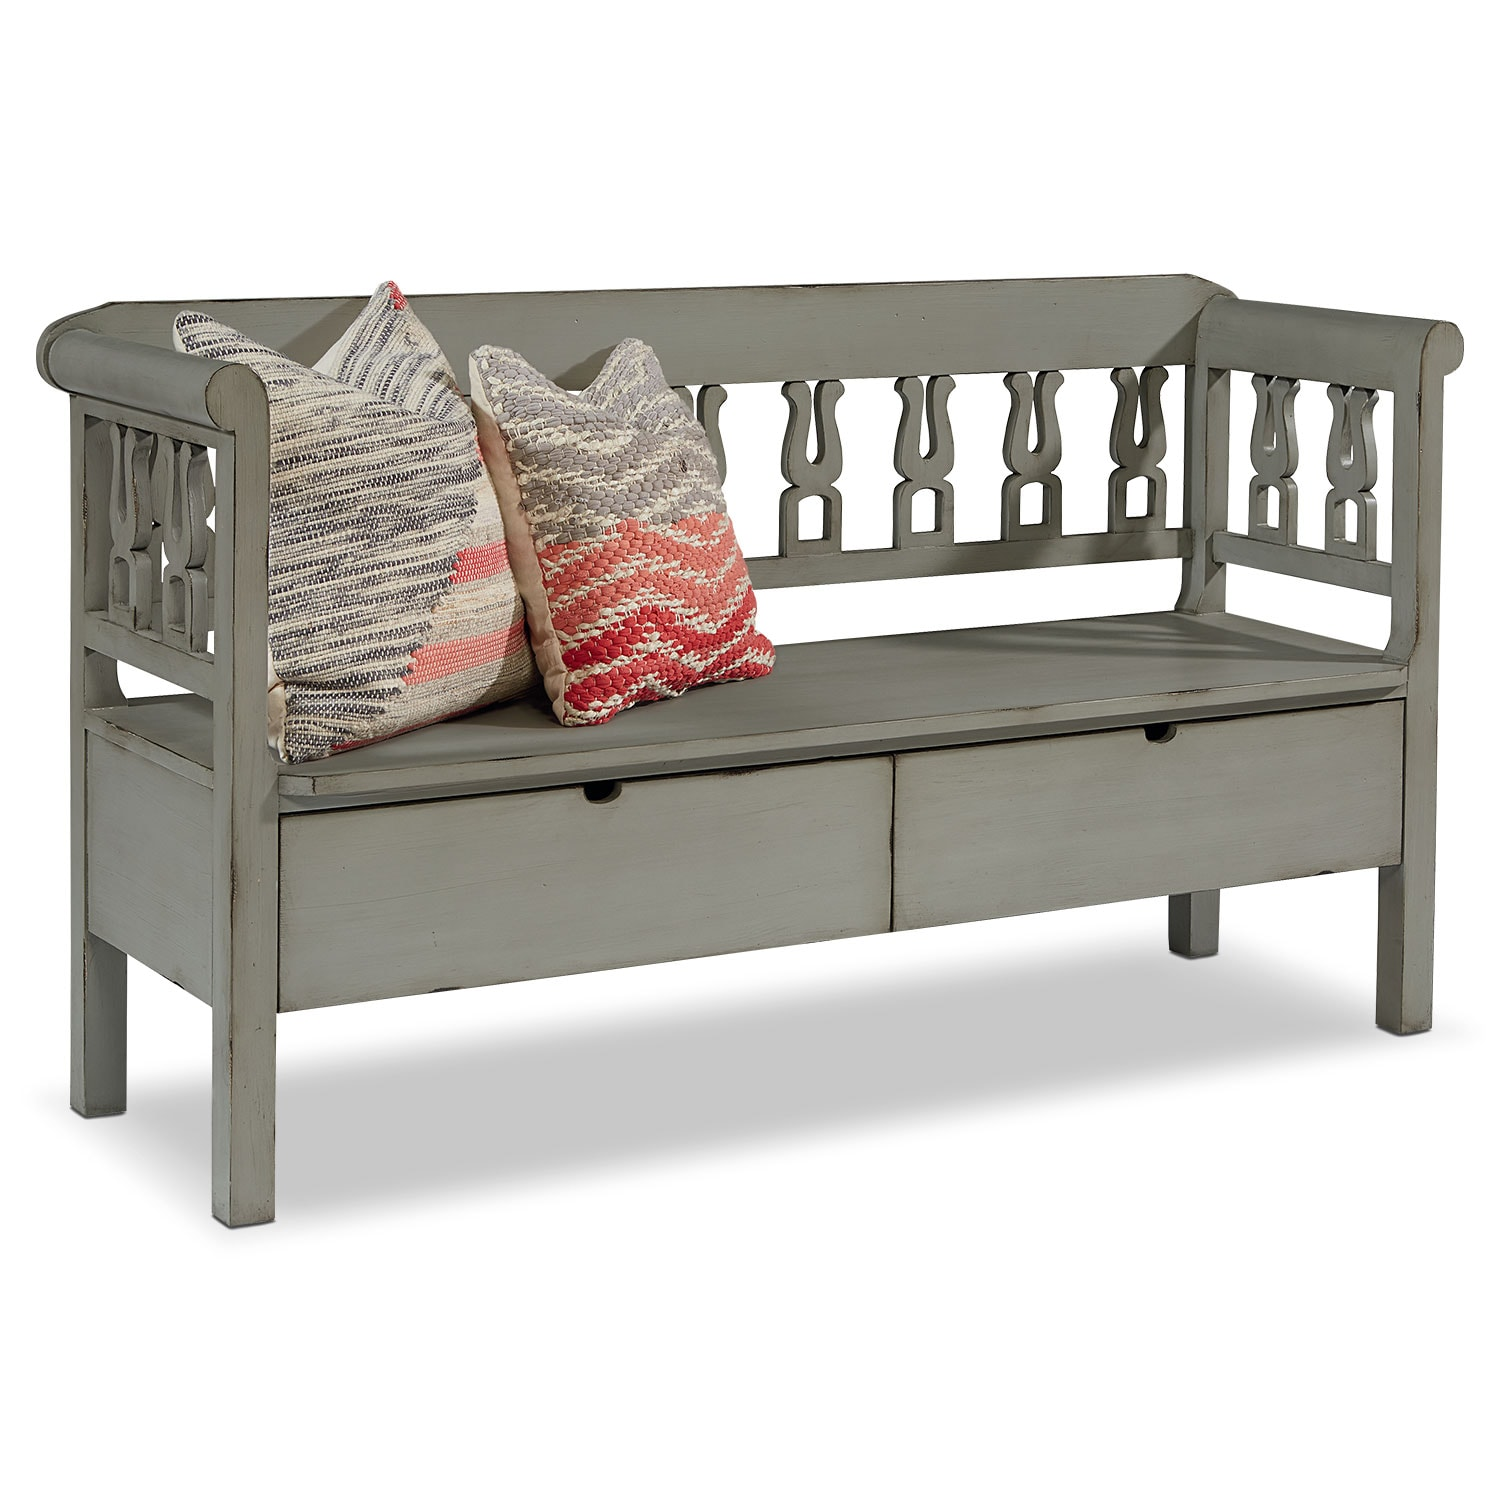 Accent and Occasional Furniture - Hall Bench with Storage - Dove Grey